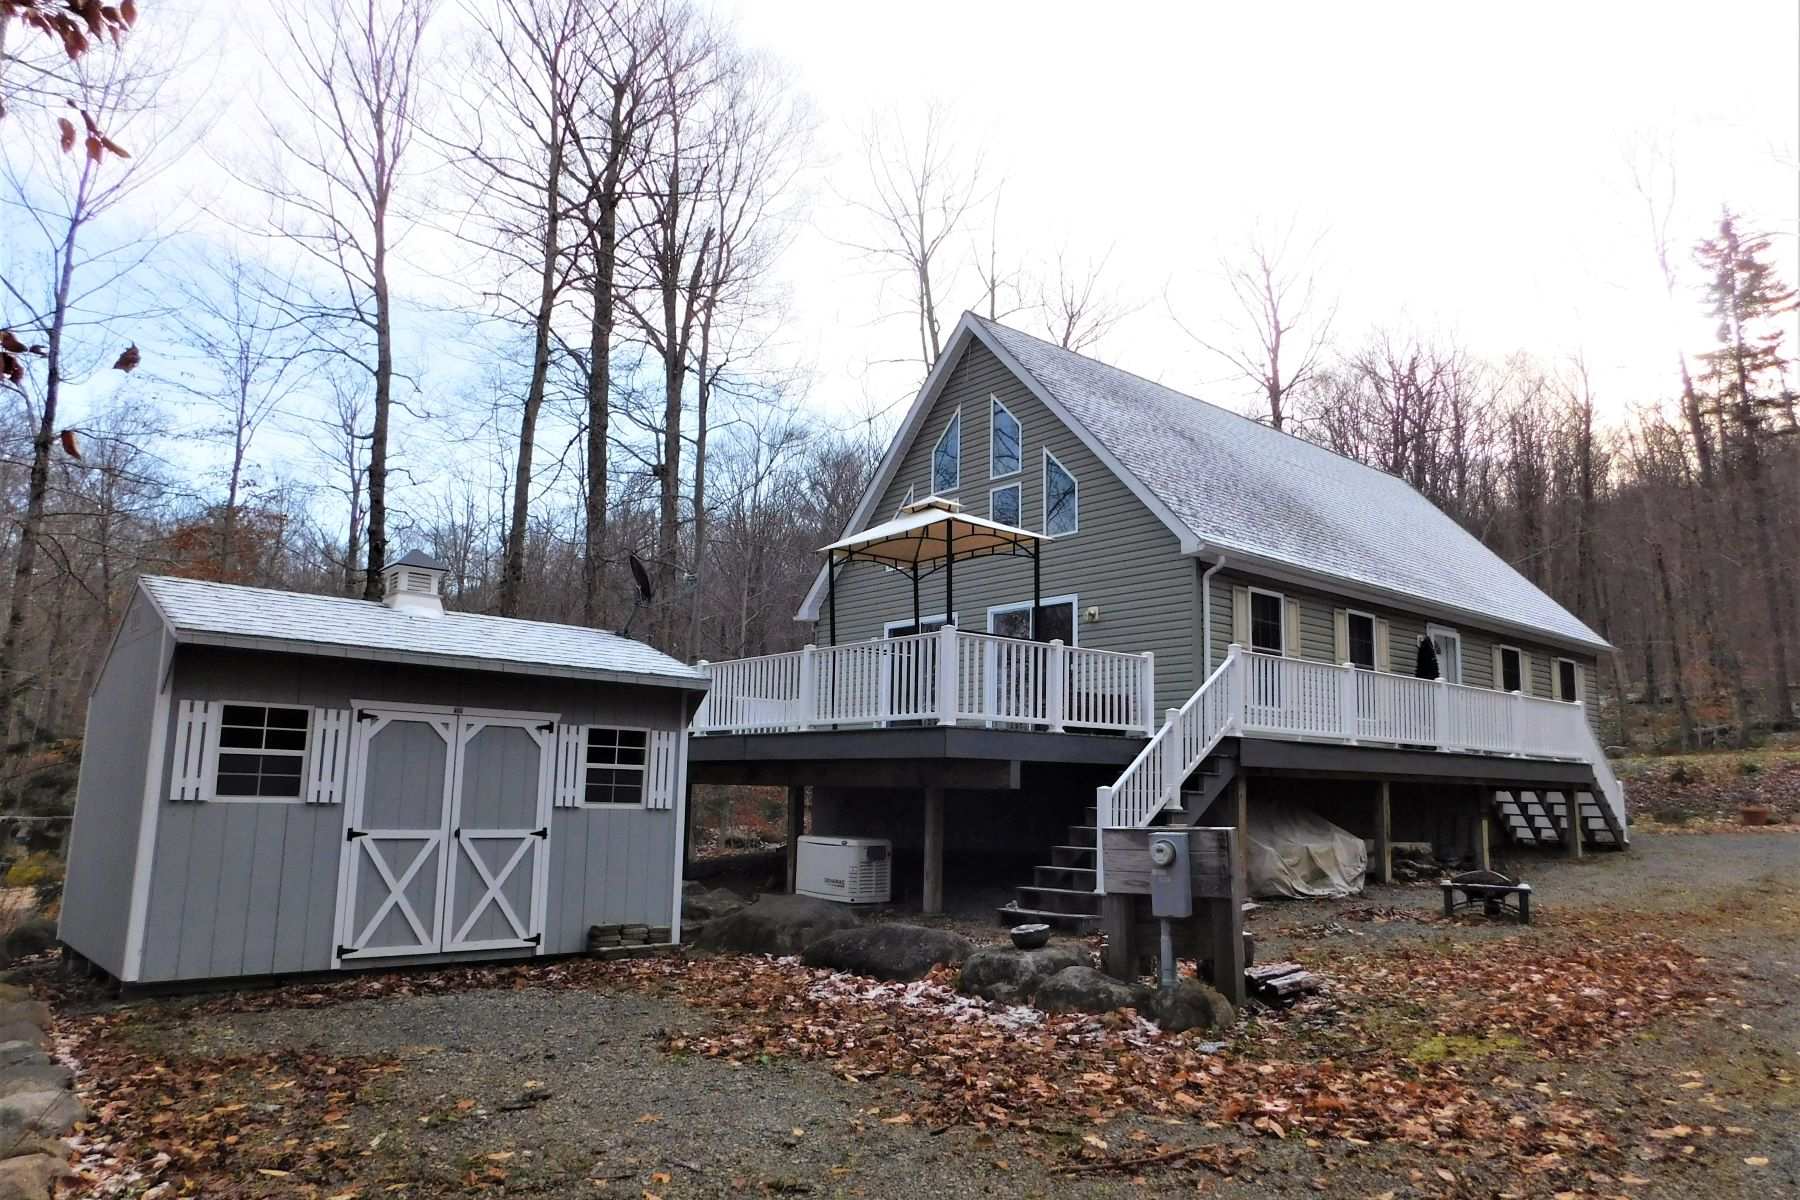 Single Family Homes for Sale at 1958 State Route 28, Thendara, NY, 13472 1958 State Route 28 Thendara, New York 13472 United States